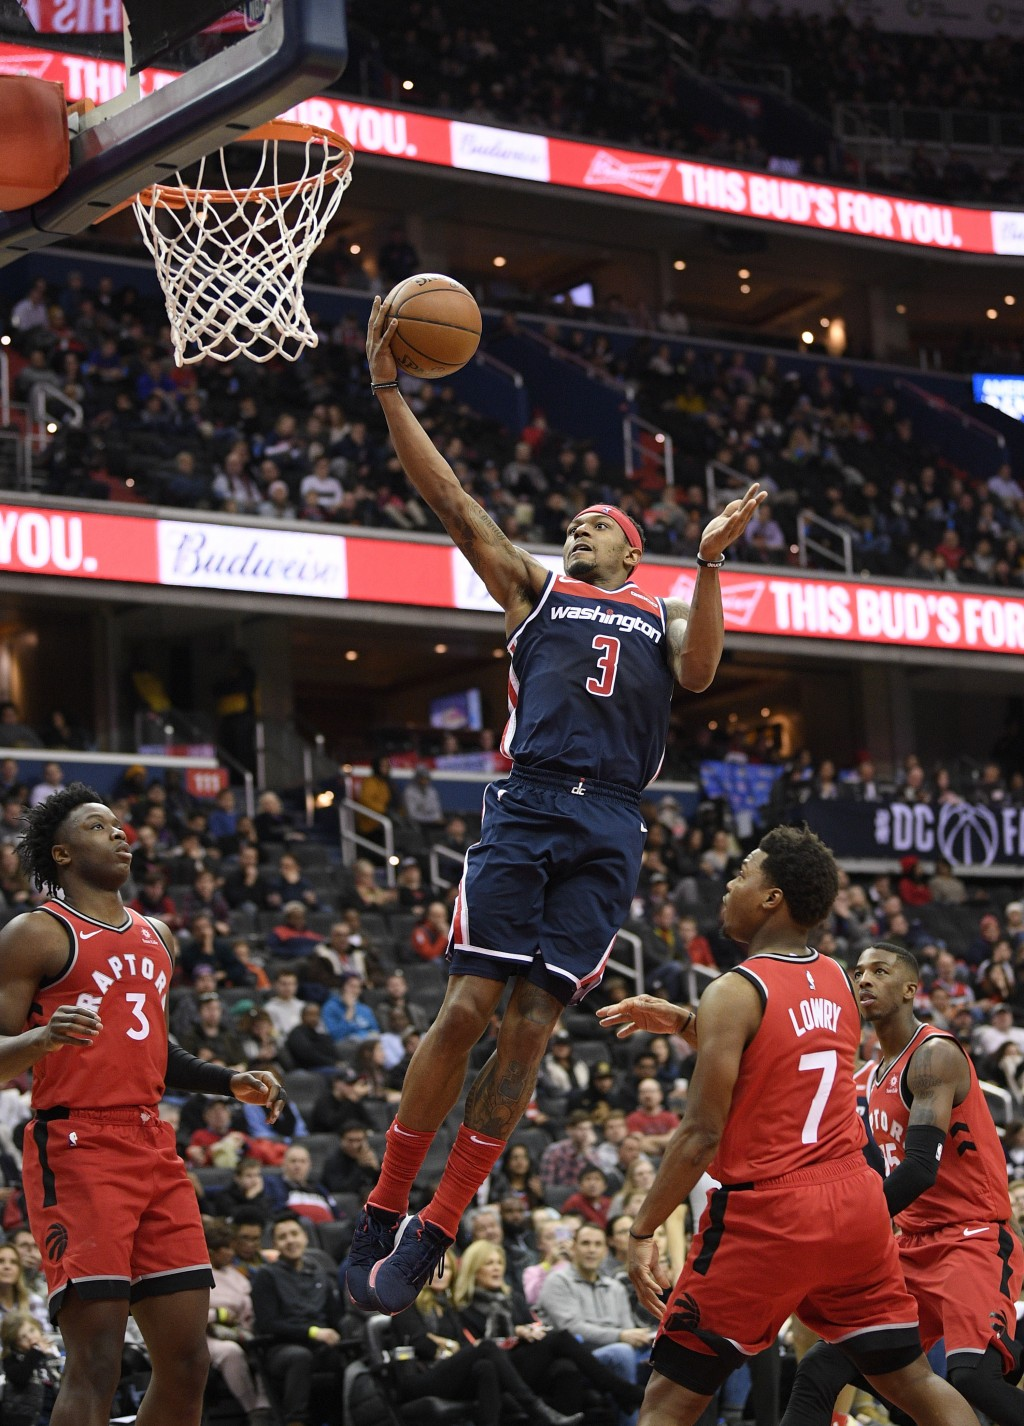 Washington Wizards guard Bradley Beal (3) goes to the basket against Toronto Raptors forward OG Anunoby (3) and guard Kyle Lowry (7) during the second